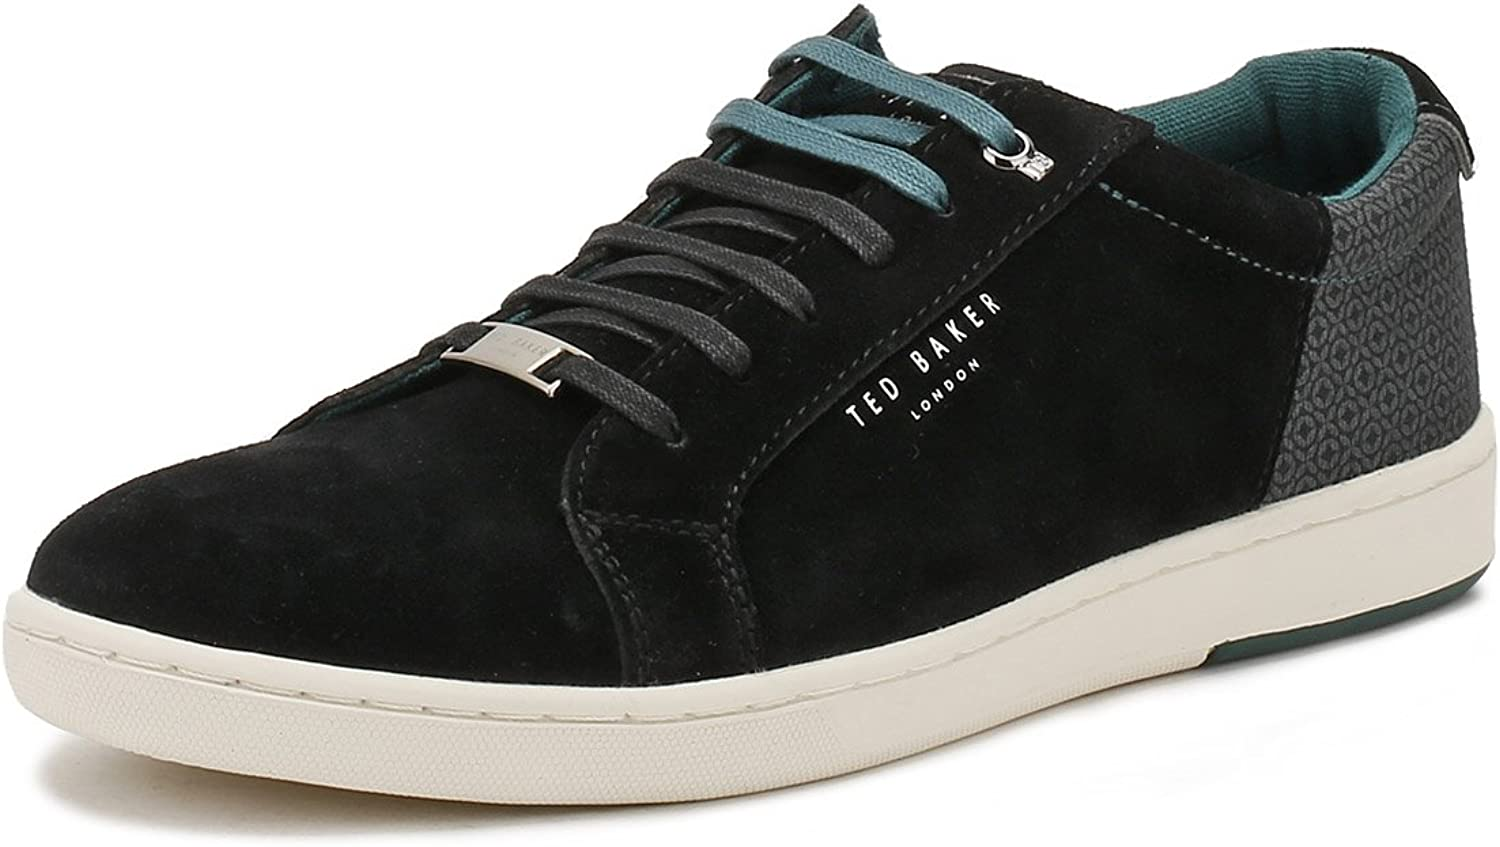 Ted Baker Mens Black Xiloto Trainers